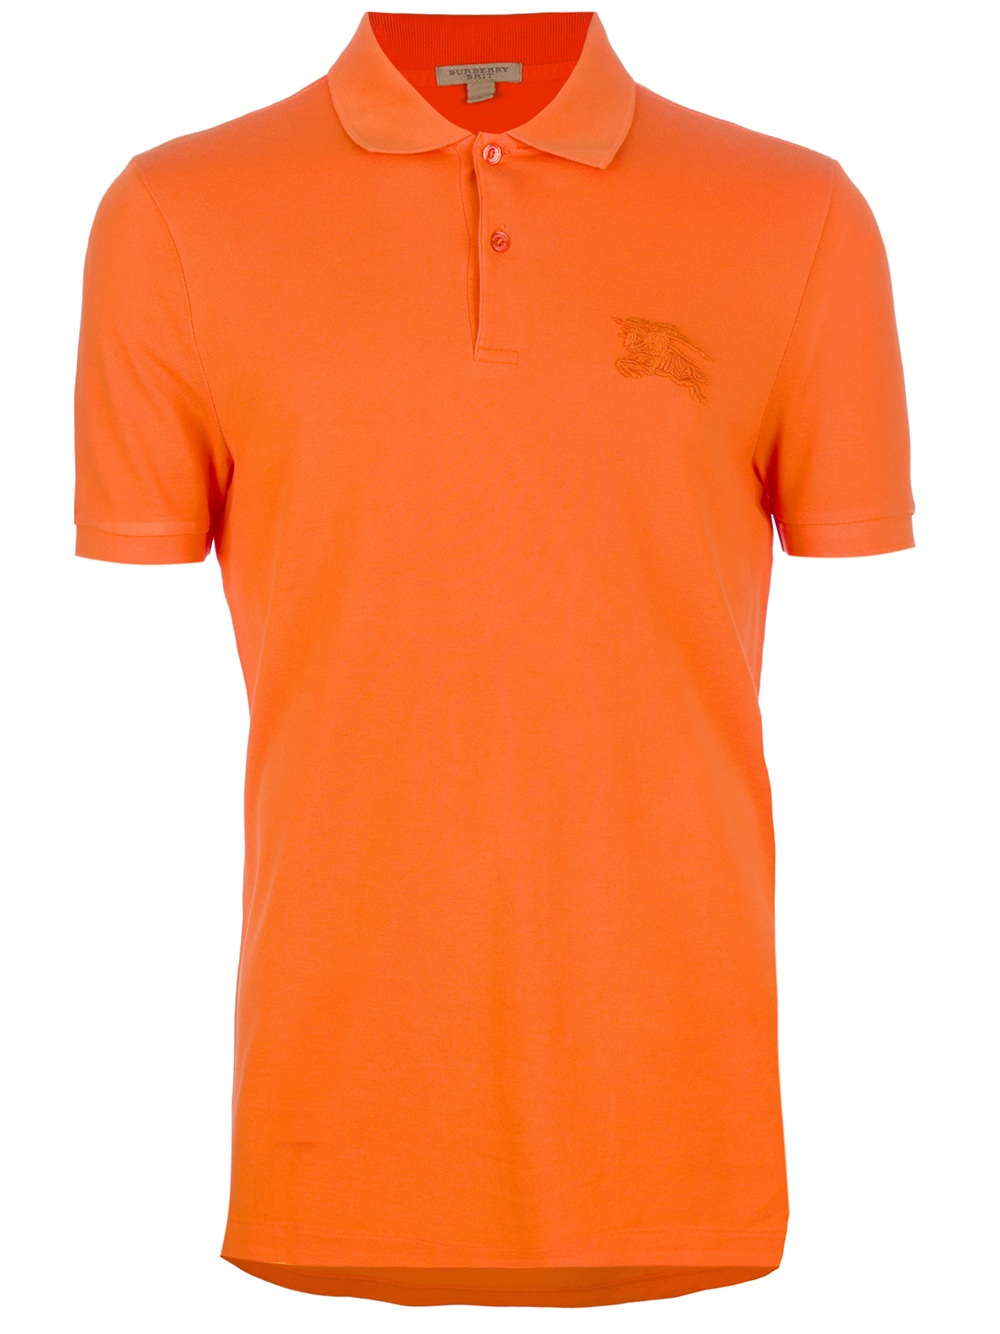 Burberry Brit Polo Shirt In Orange For Men Lyst